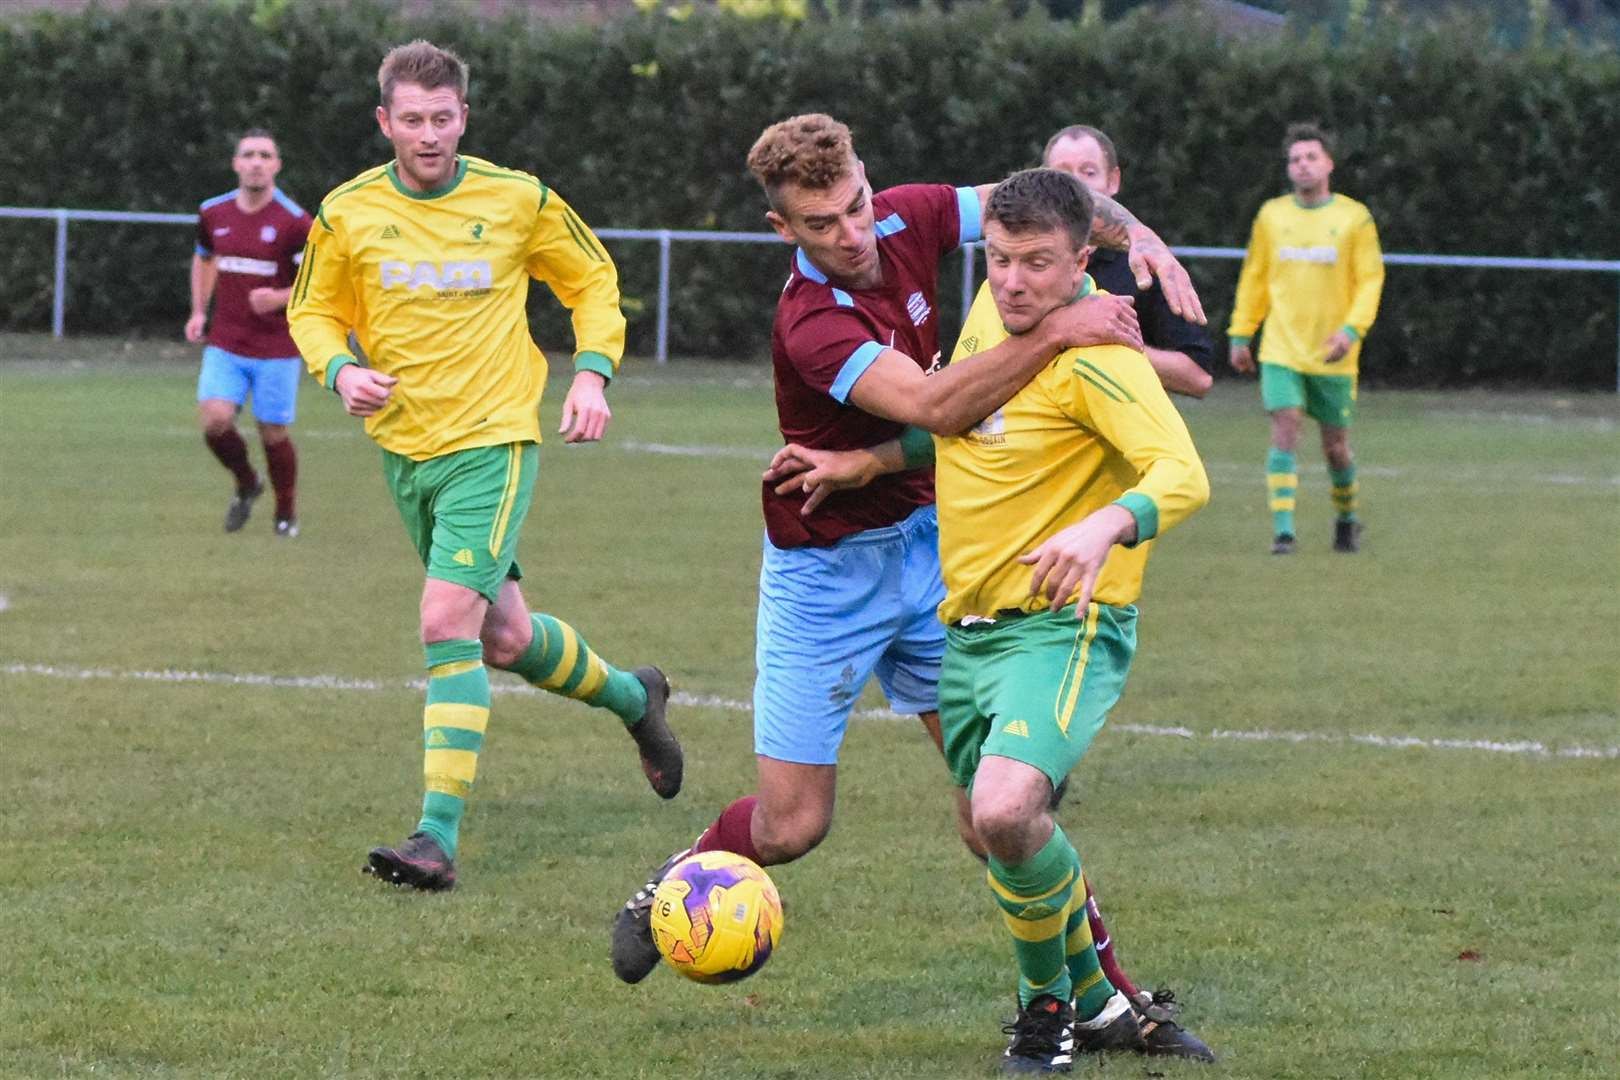 Bourne Town v Holwell Sports